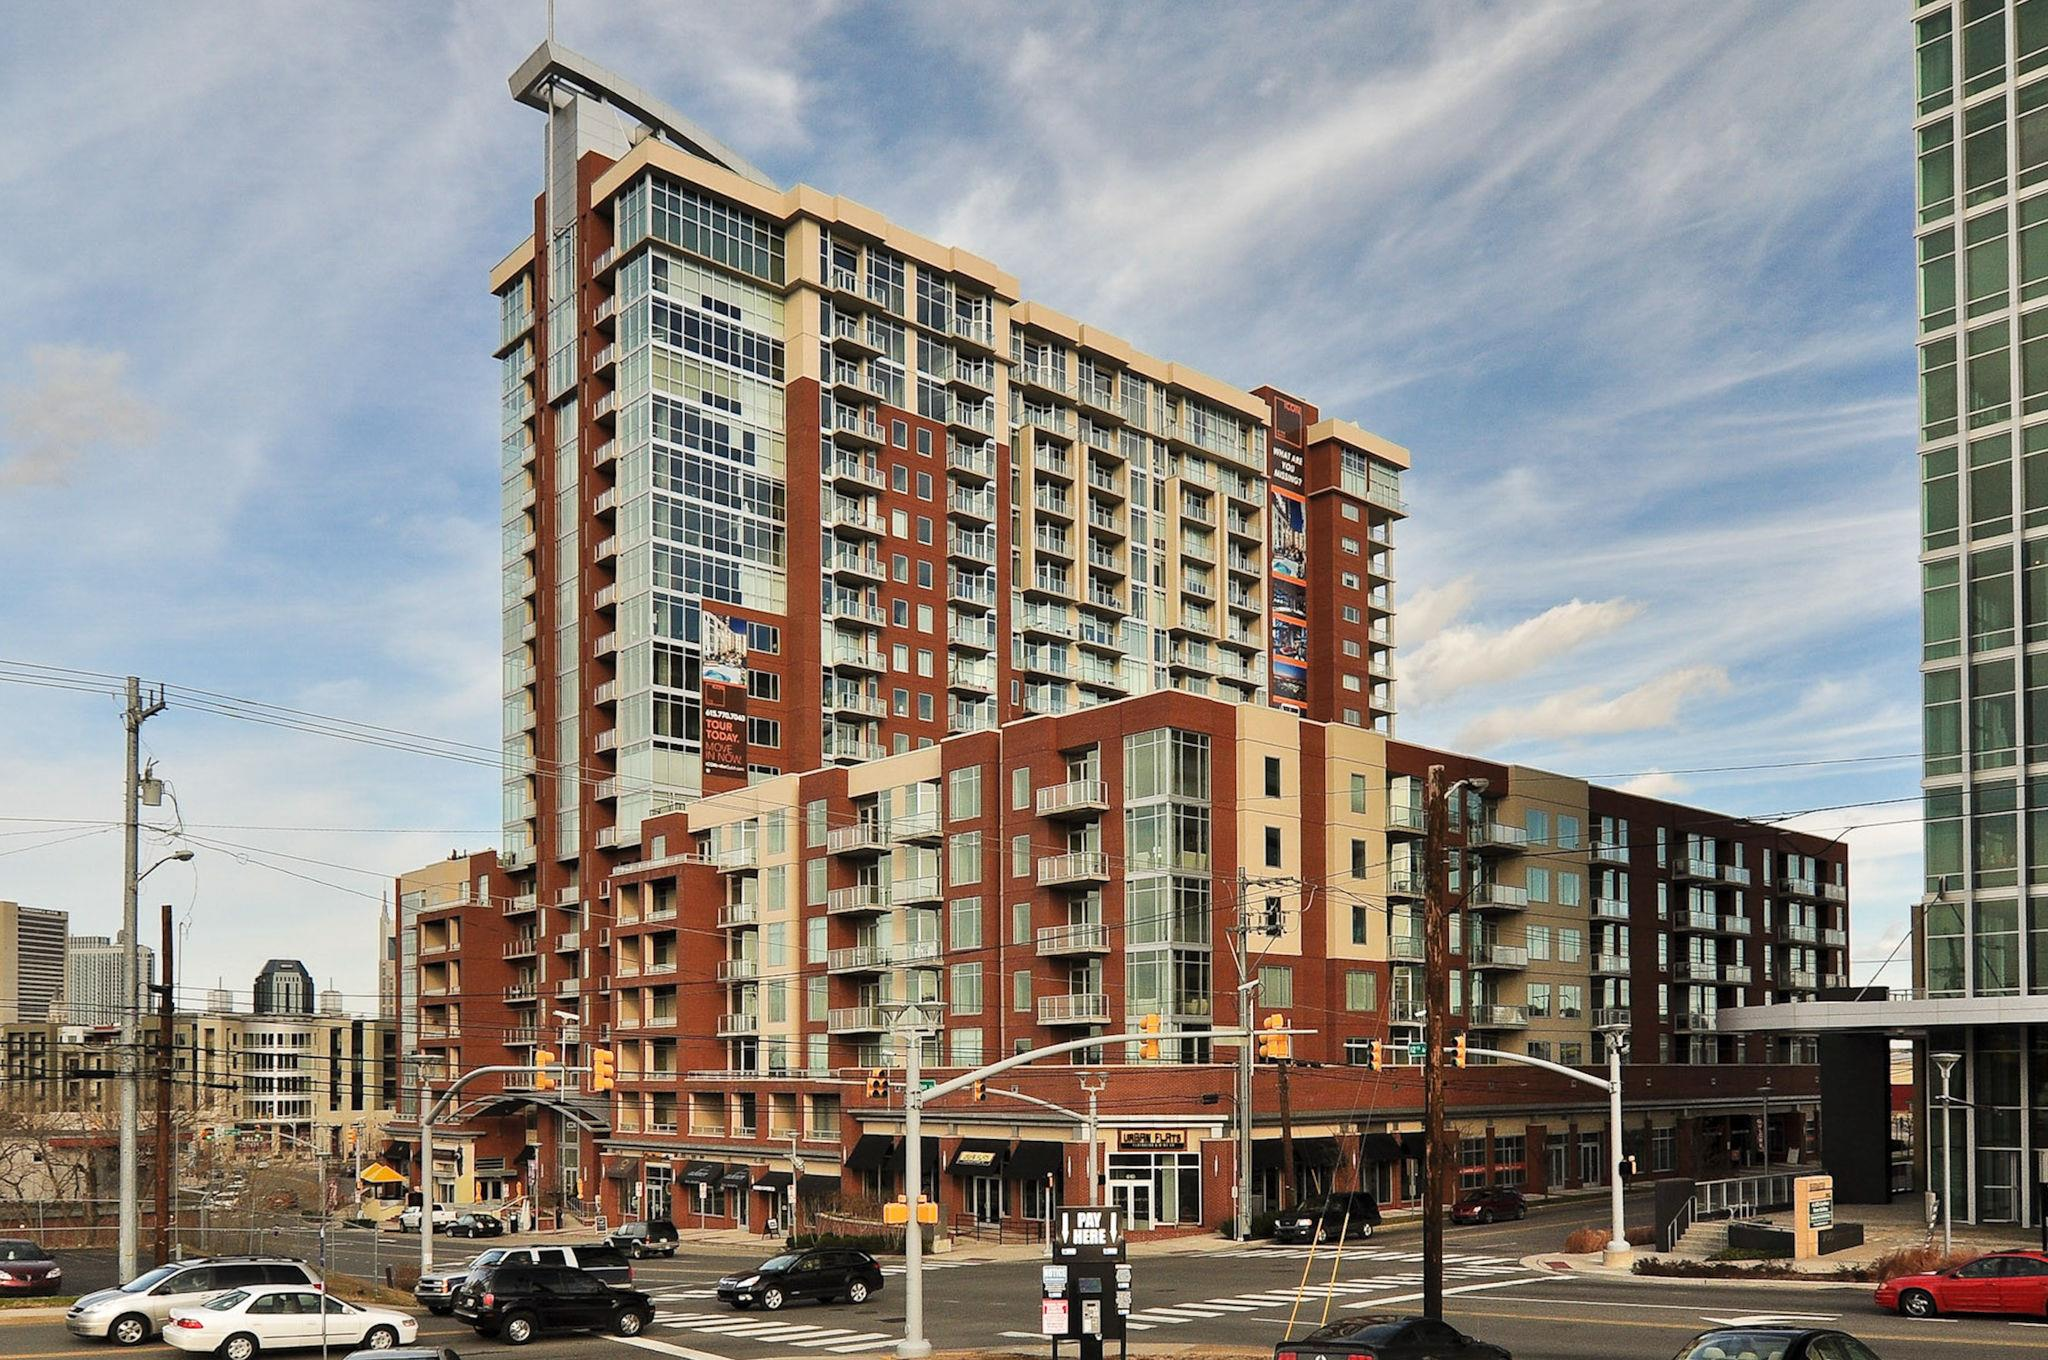 600 12th Ave S #415, Nashville - Midtown in Davidson County County, TN 37203 Home for Sale